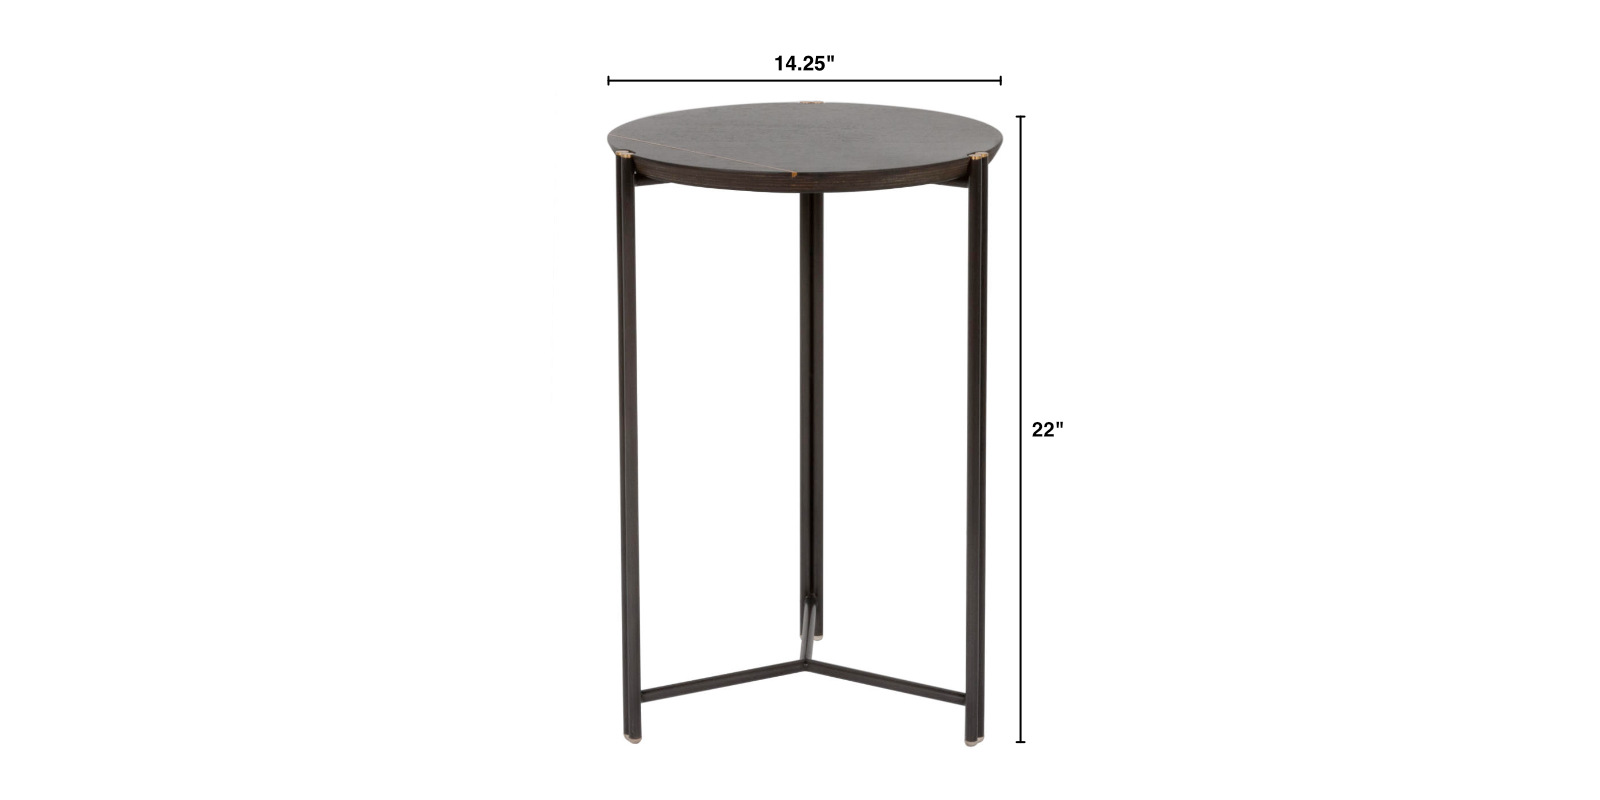 Trio Occassional Table Dimensions